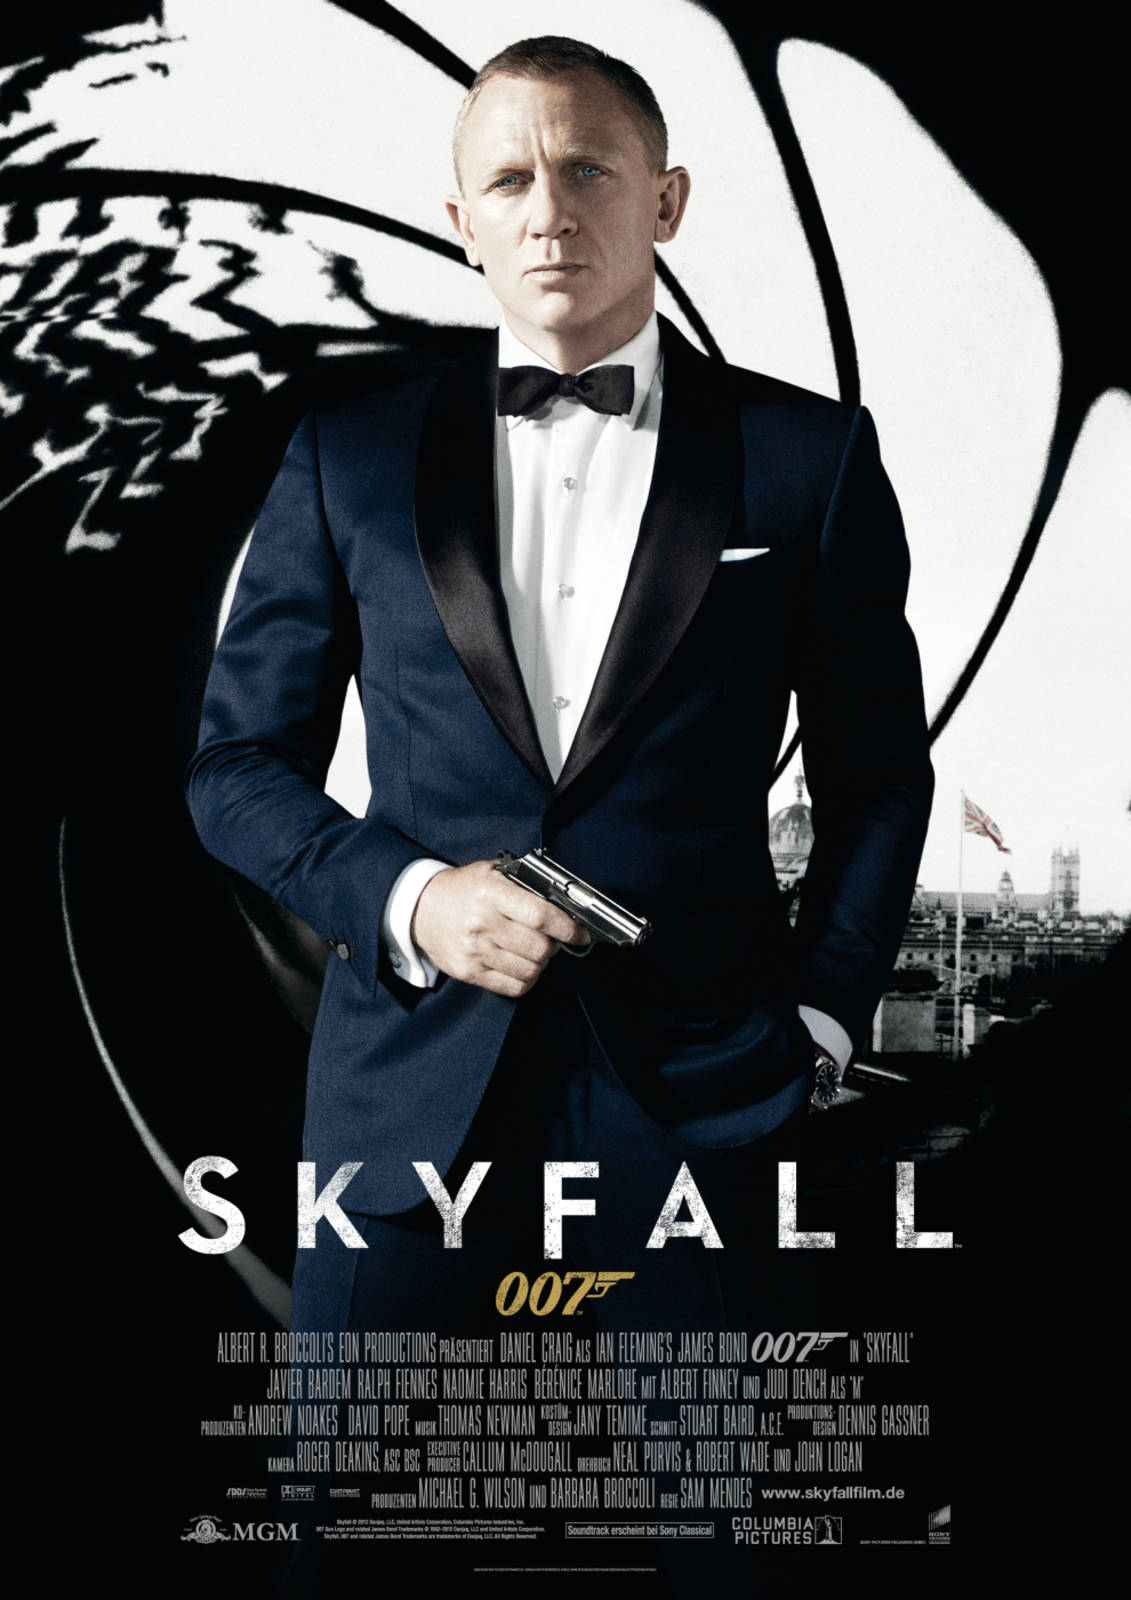 movie skyfall - cineman